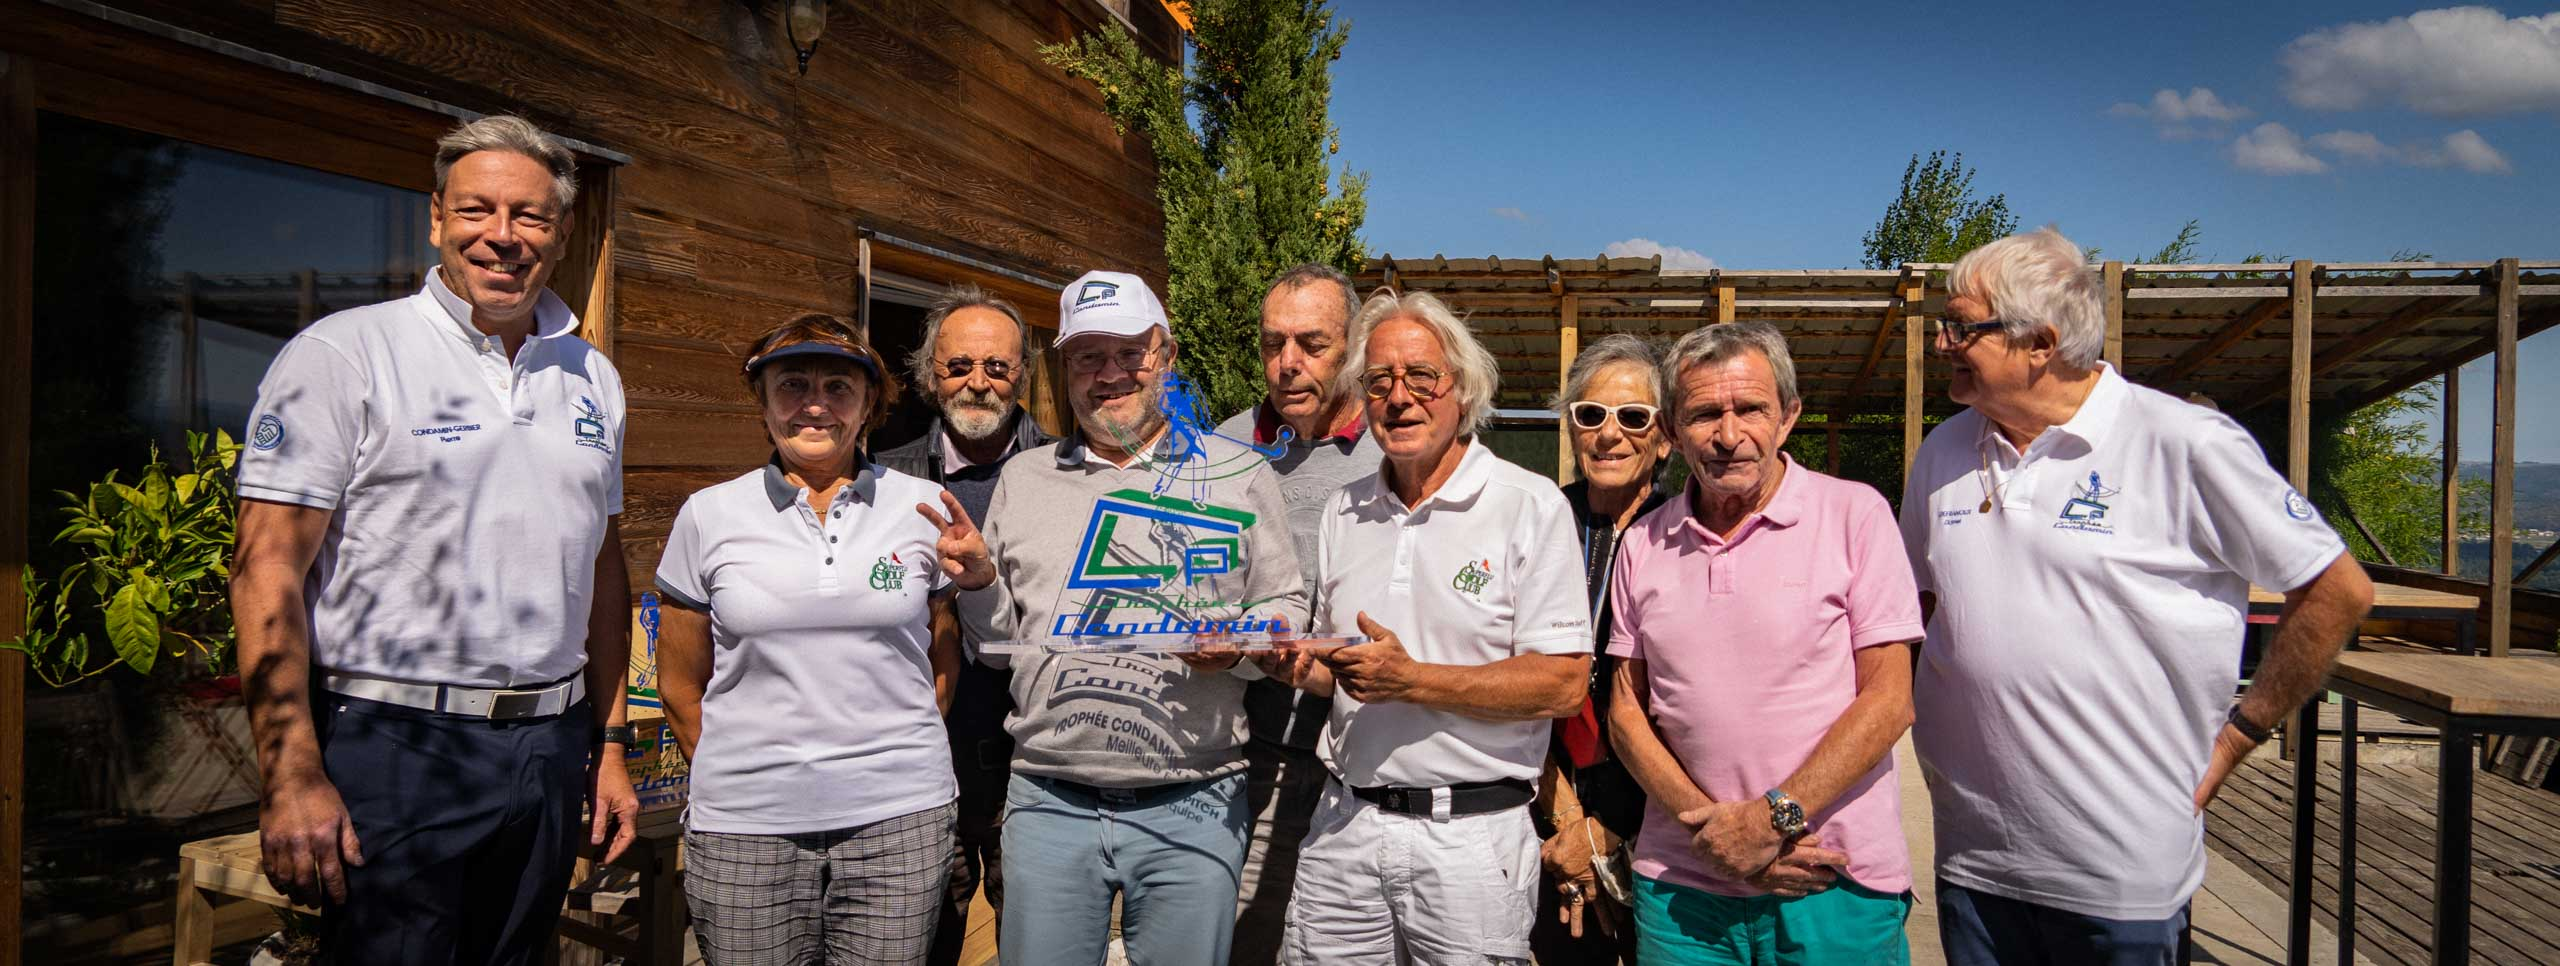 Trophee Condamin 2020 Pitch And Putt T4 Coutanson 57